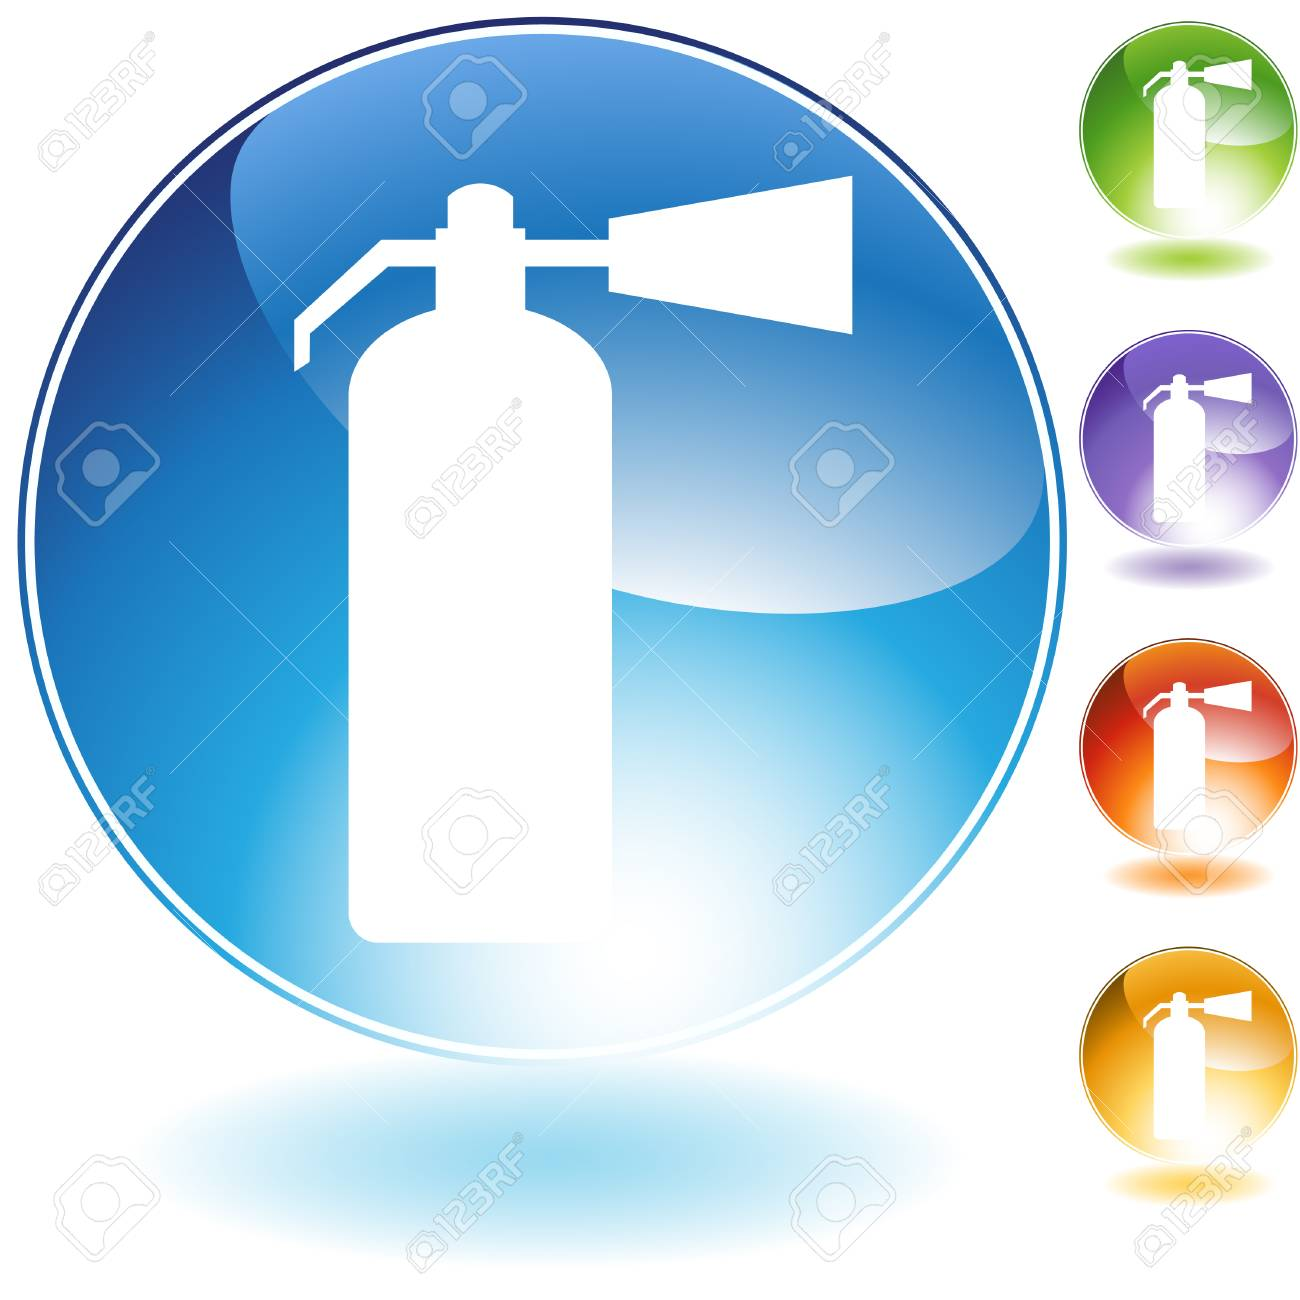 Fire extinguisher crystal icon isolated on a white background. Stock Vector - 5892080